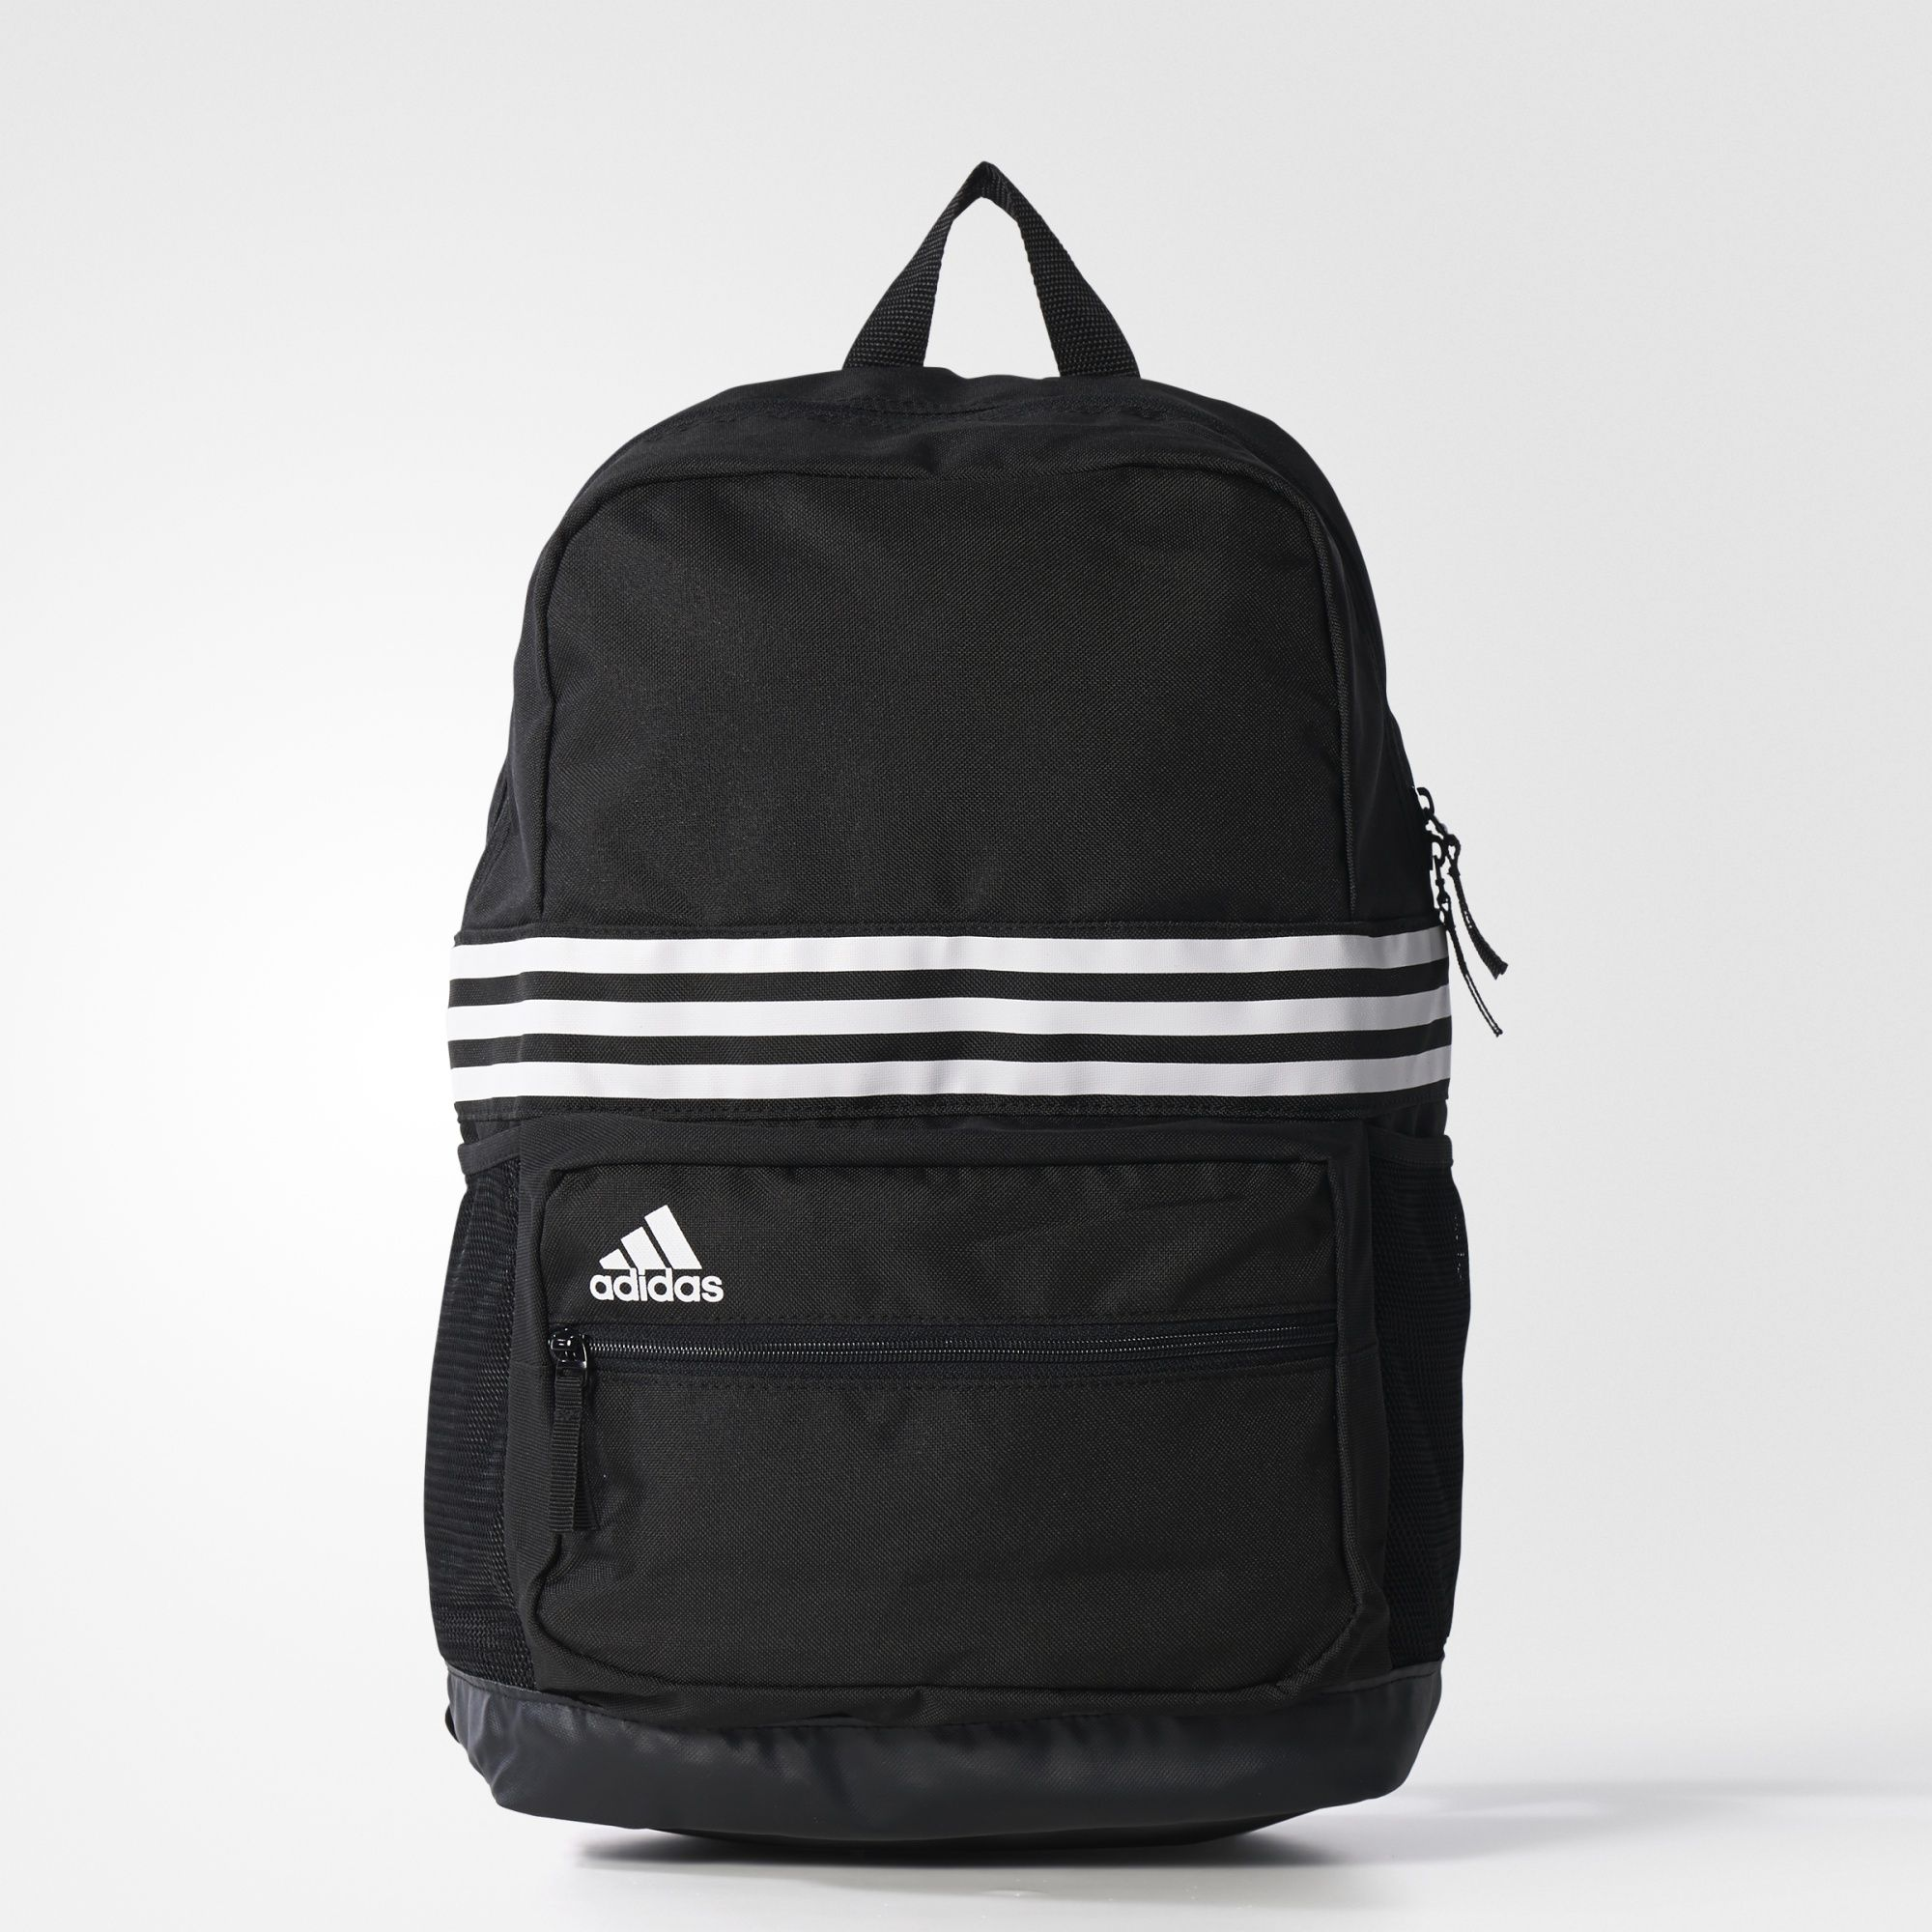 adidas backpack uk